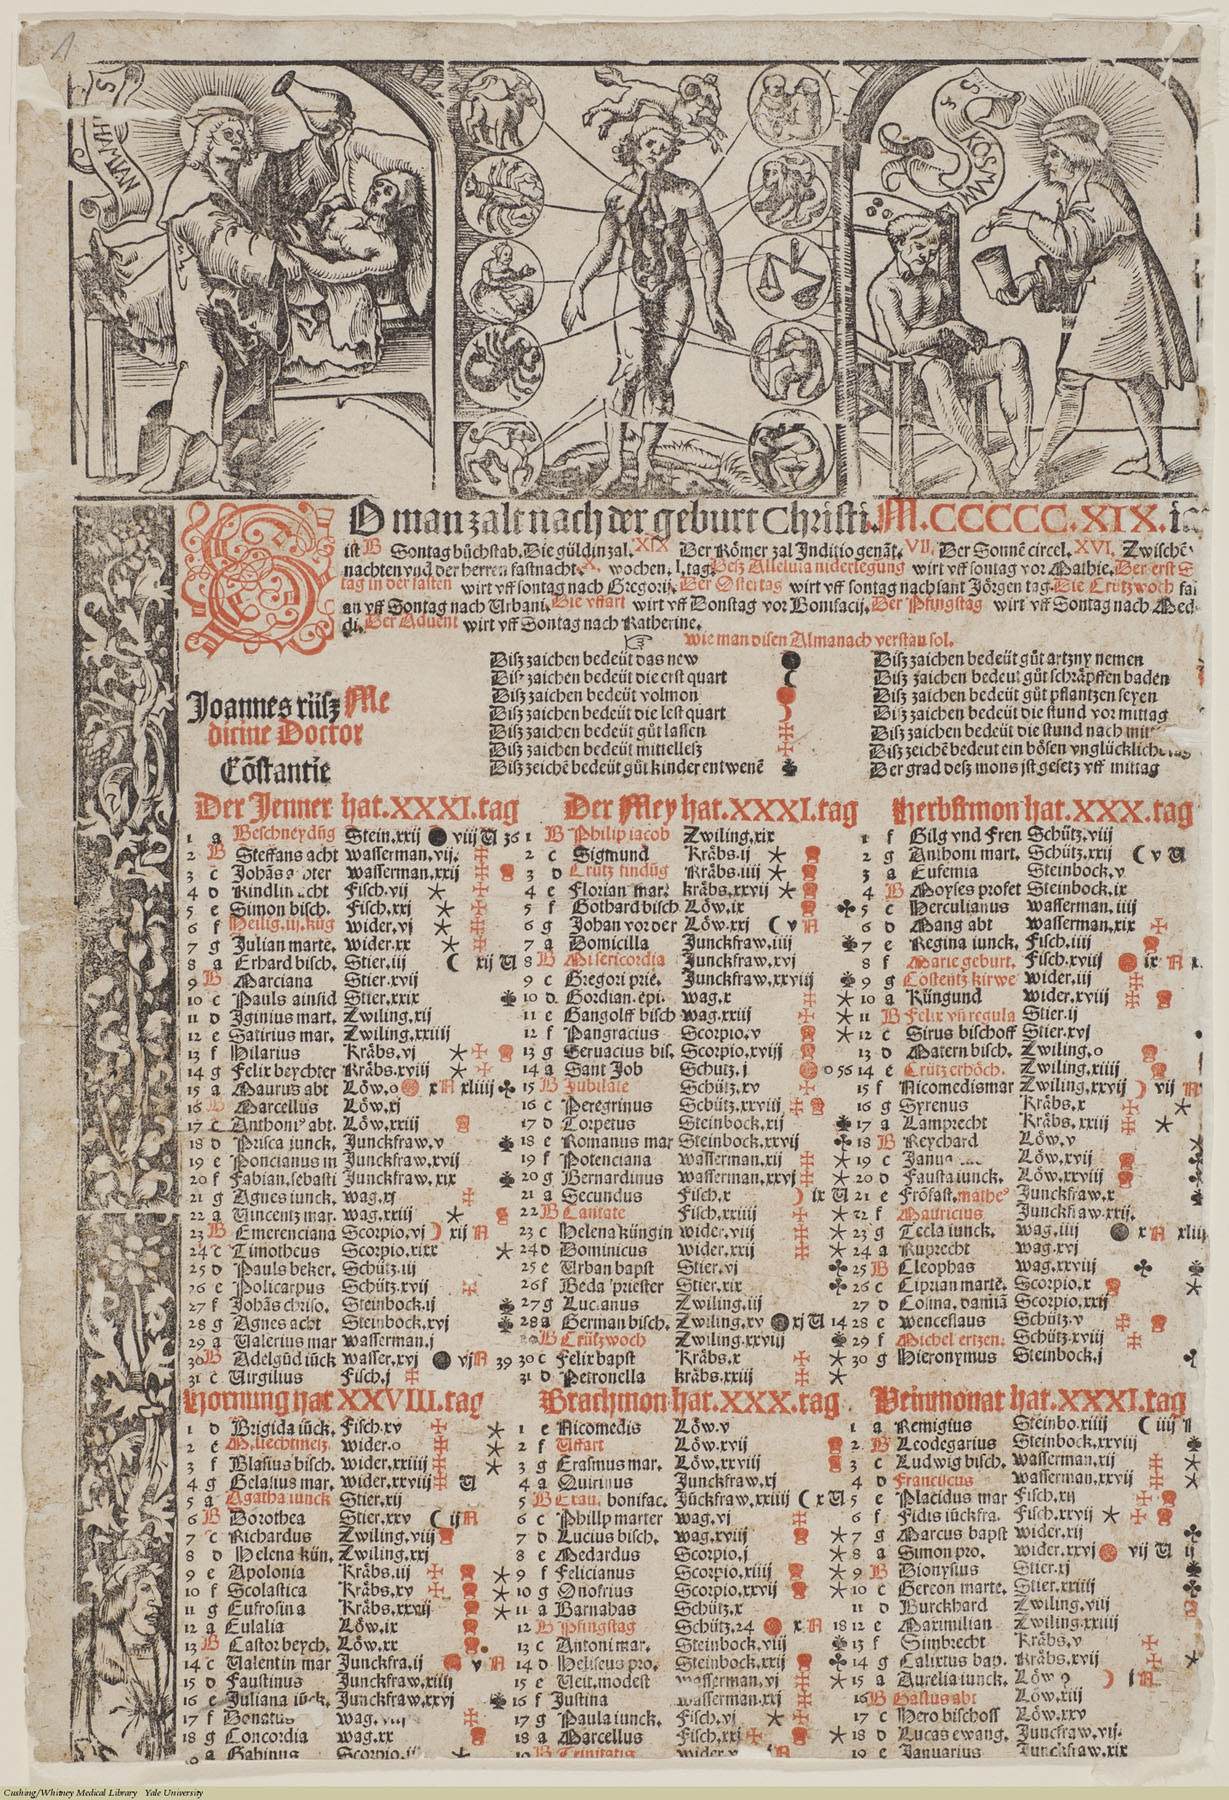 [Bloodletting Calendar] So man zalt nach der geburt Christ M.CCCCC.XIX. Anonymous, German, 1519. Subject: Phlebotomy, Almanacs & Calenders, Astrology, Saints, Uroscopy, Saint Cosmas, Saint Damian.